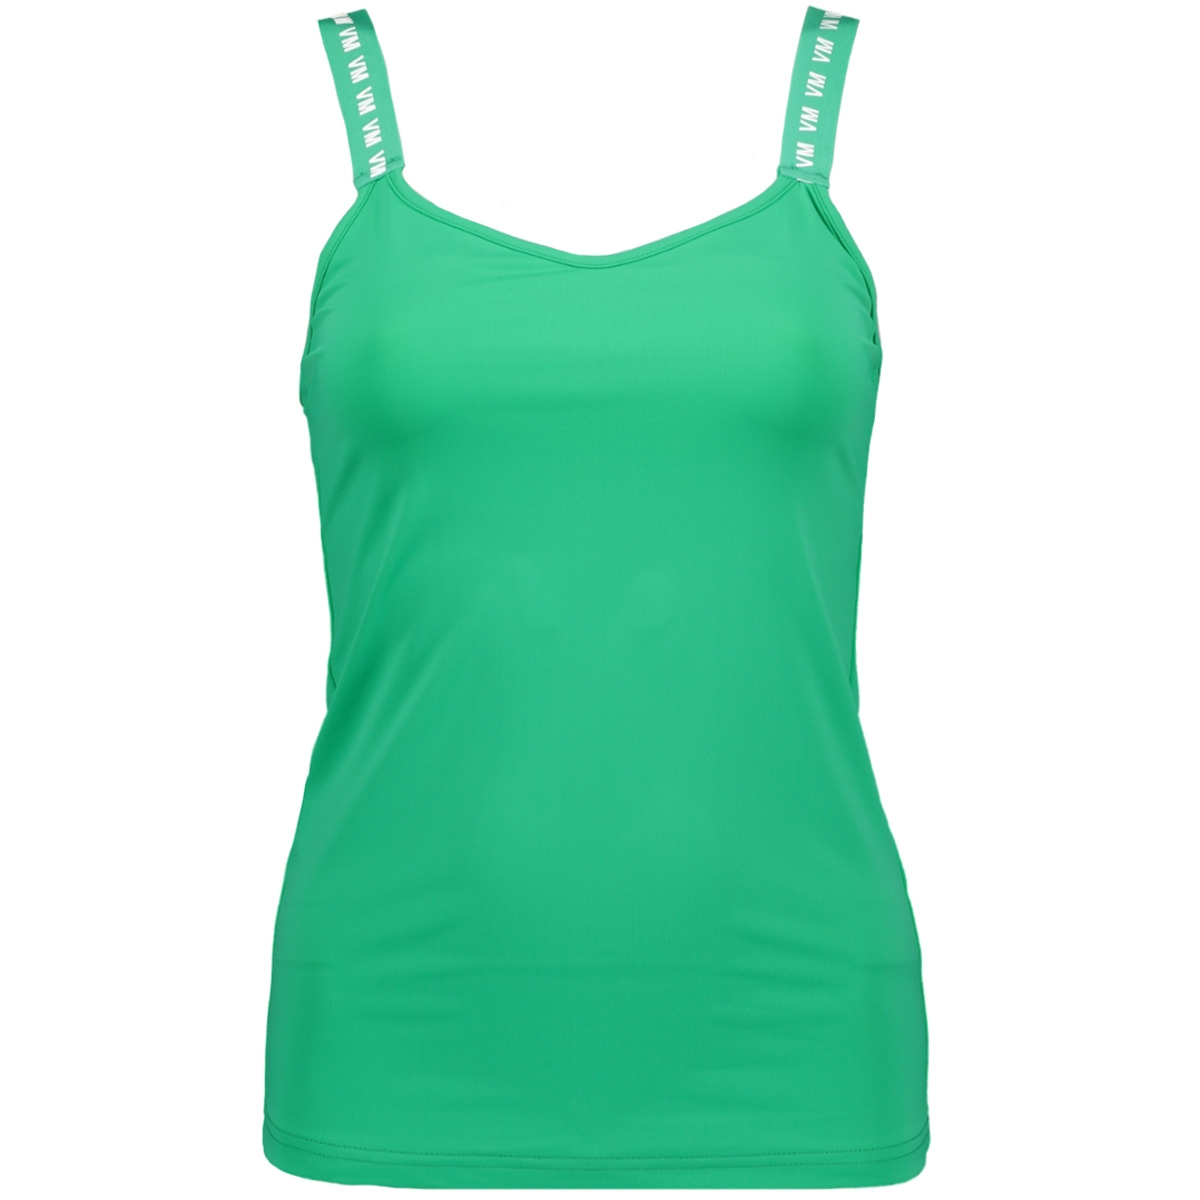 vmnaomi sl sporty tanktop lcs 10215994 vero moda top holly green/vm letters